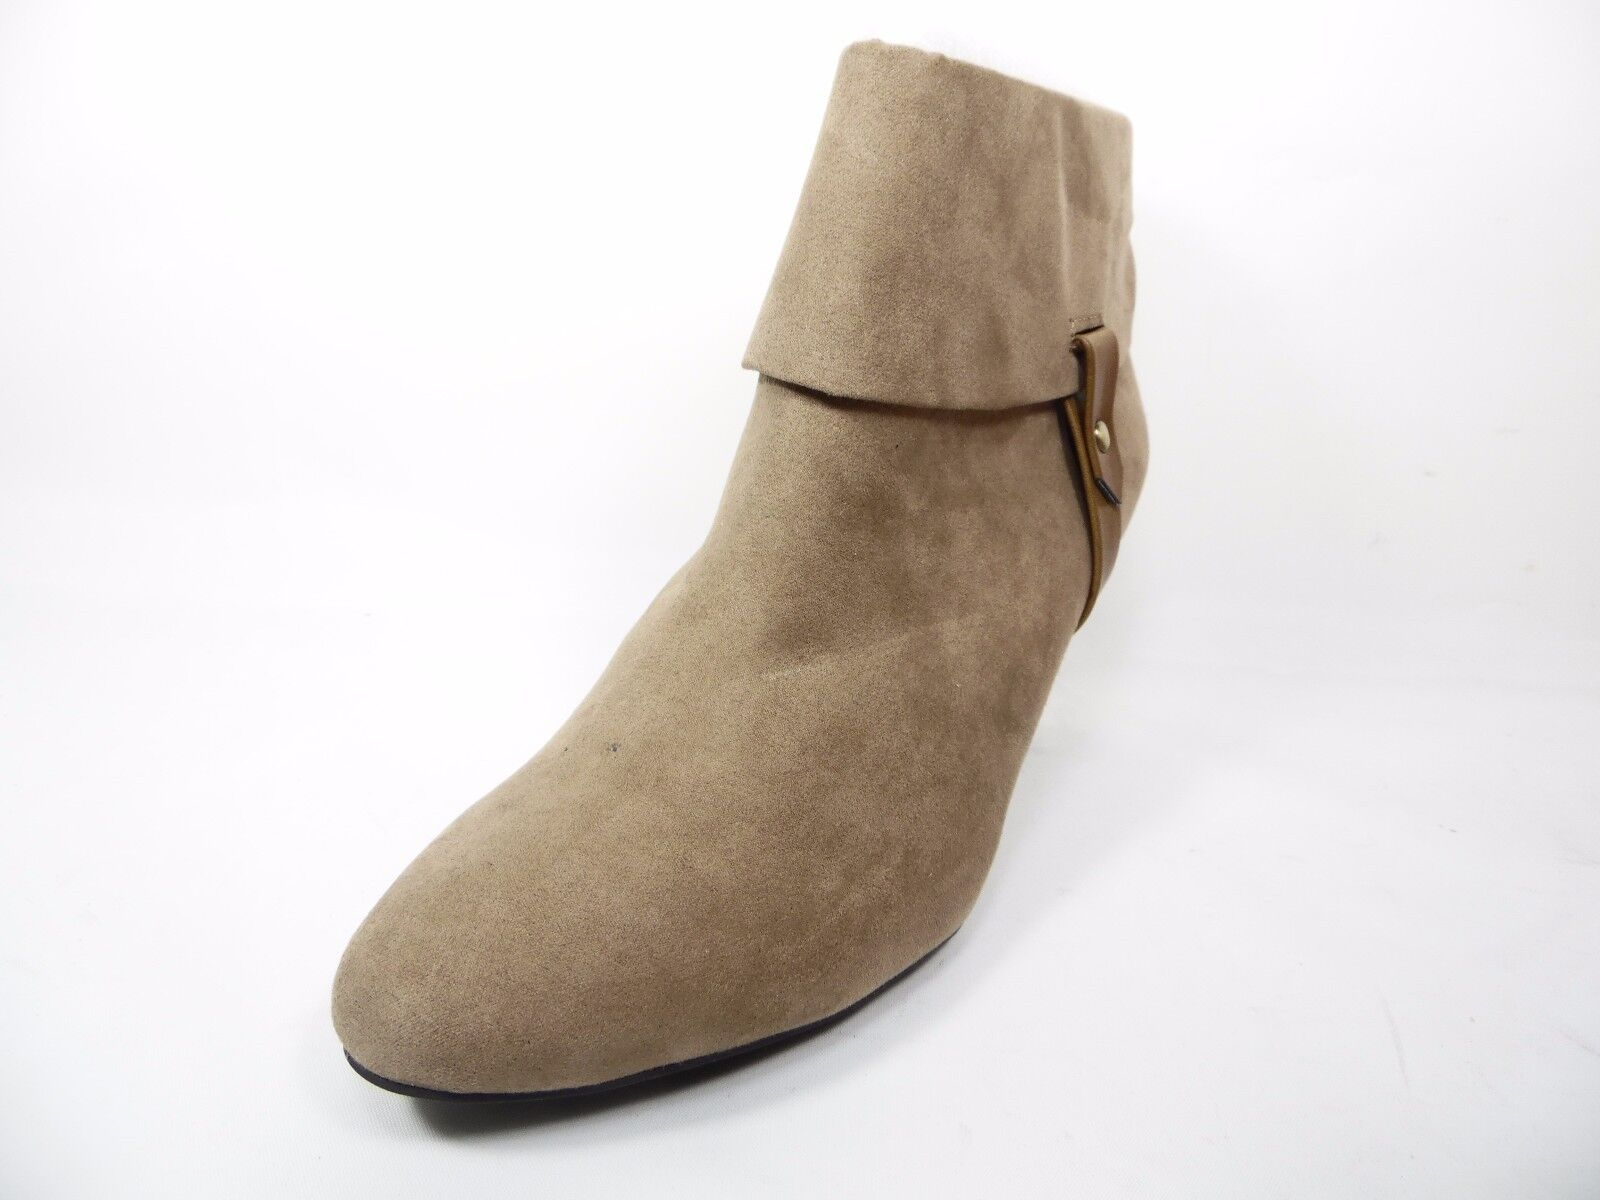 East 5th Quann Damenschuhe Ankle Booties Heels Man Made Taupe Größe 8M